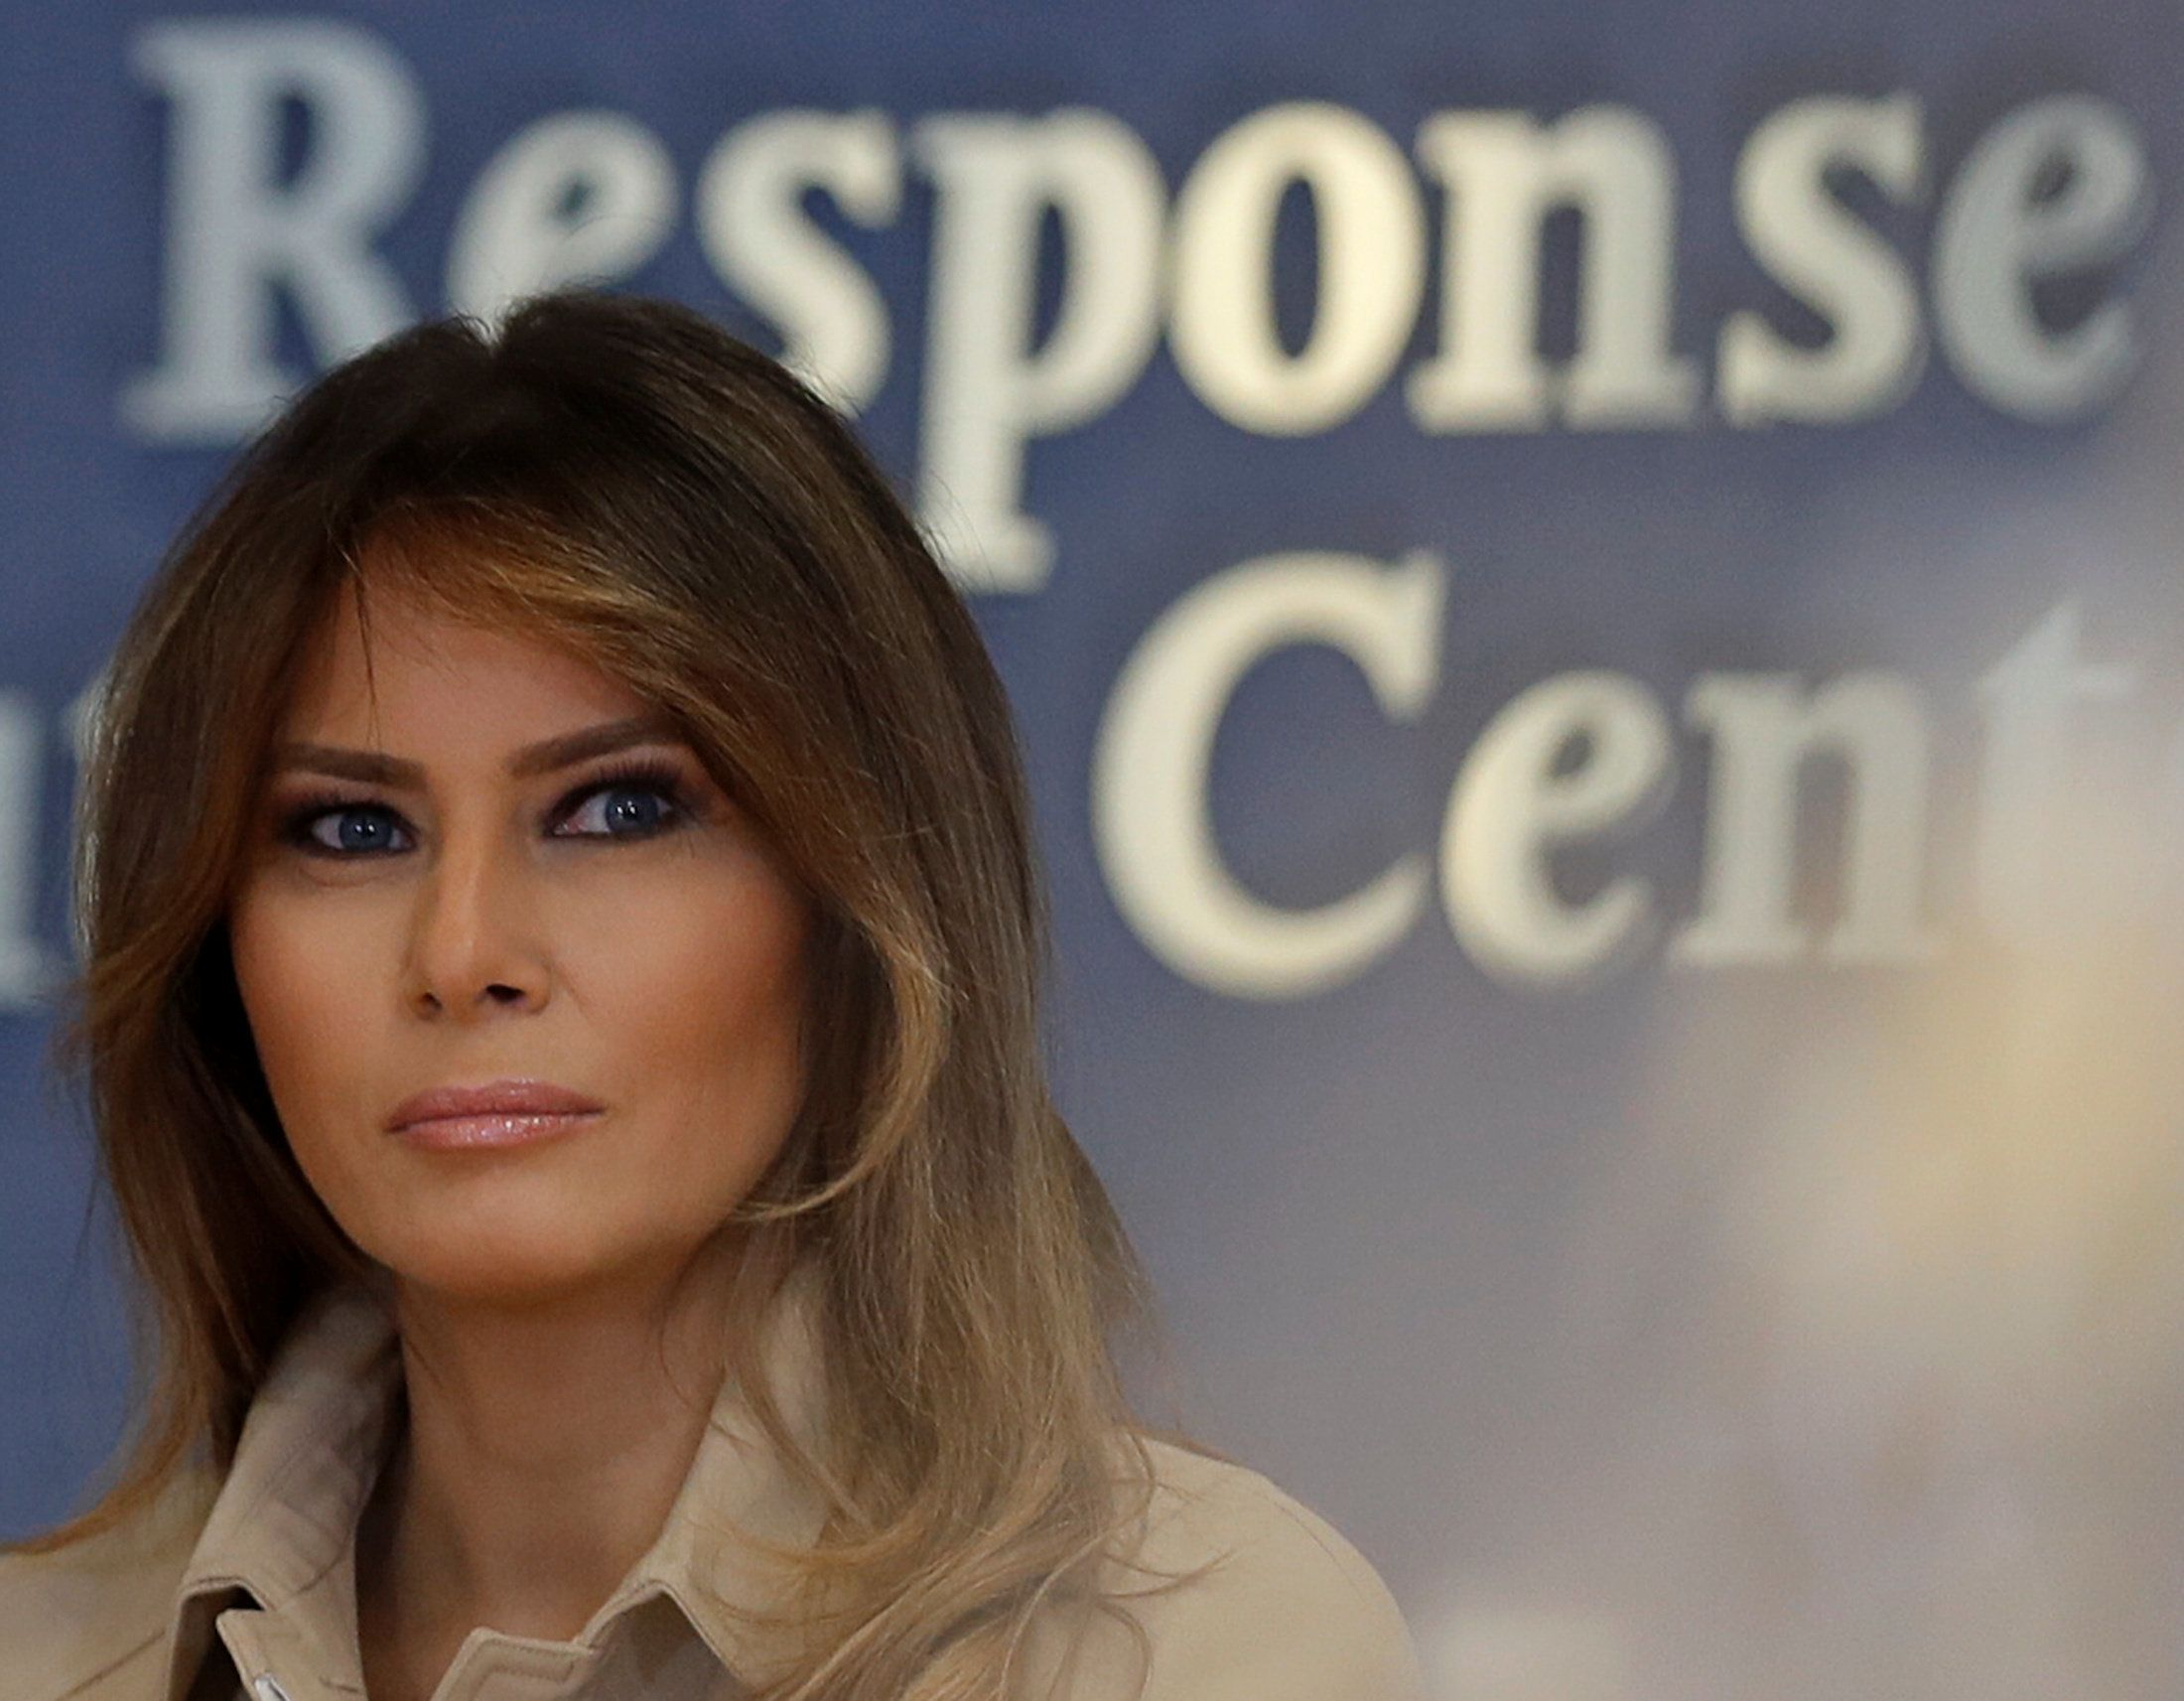 U.S. first lady Melania Trump appears with President Donald Trump at a public event for the first time in almost a month at a hurricane response briefing at the Federal Emergency Management Agency (FEMA) in Washington, U.S., June 6, 2018. REUTERS/Carlos Barria